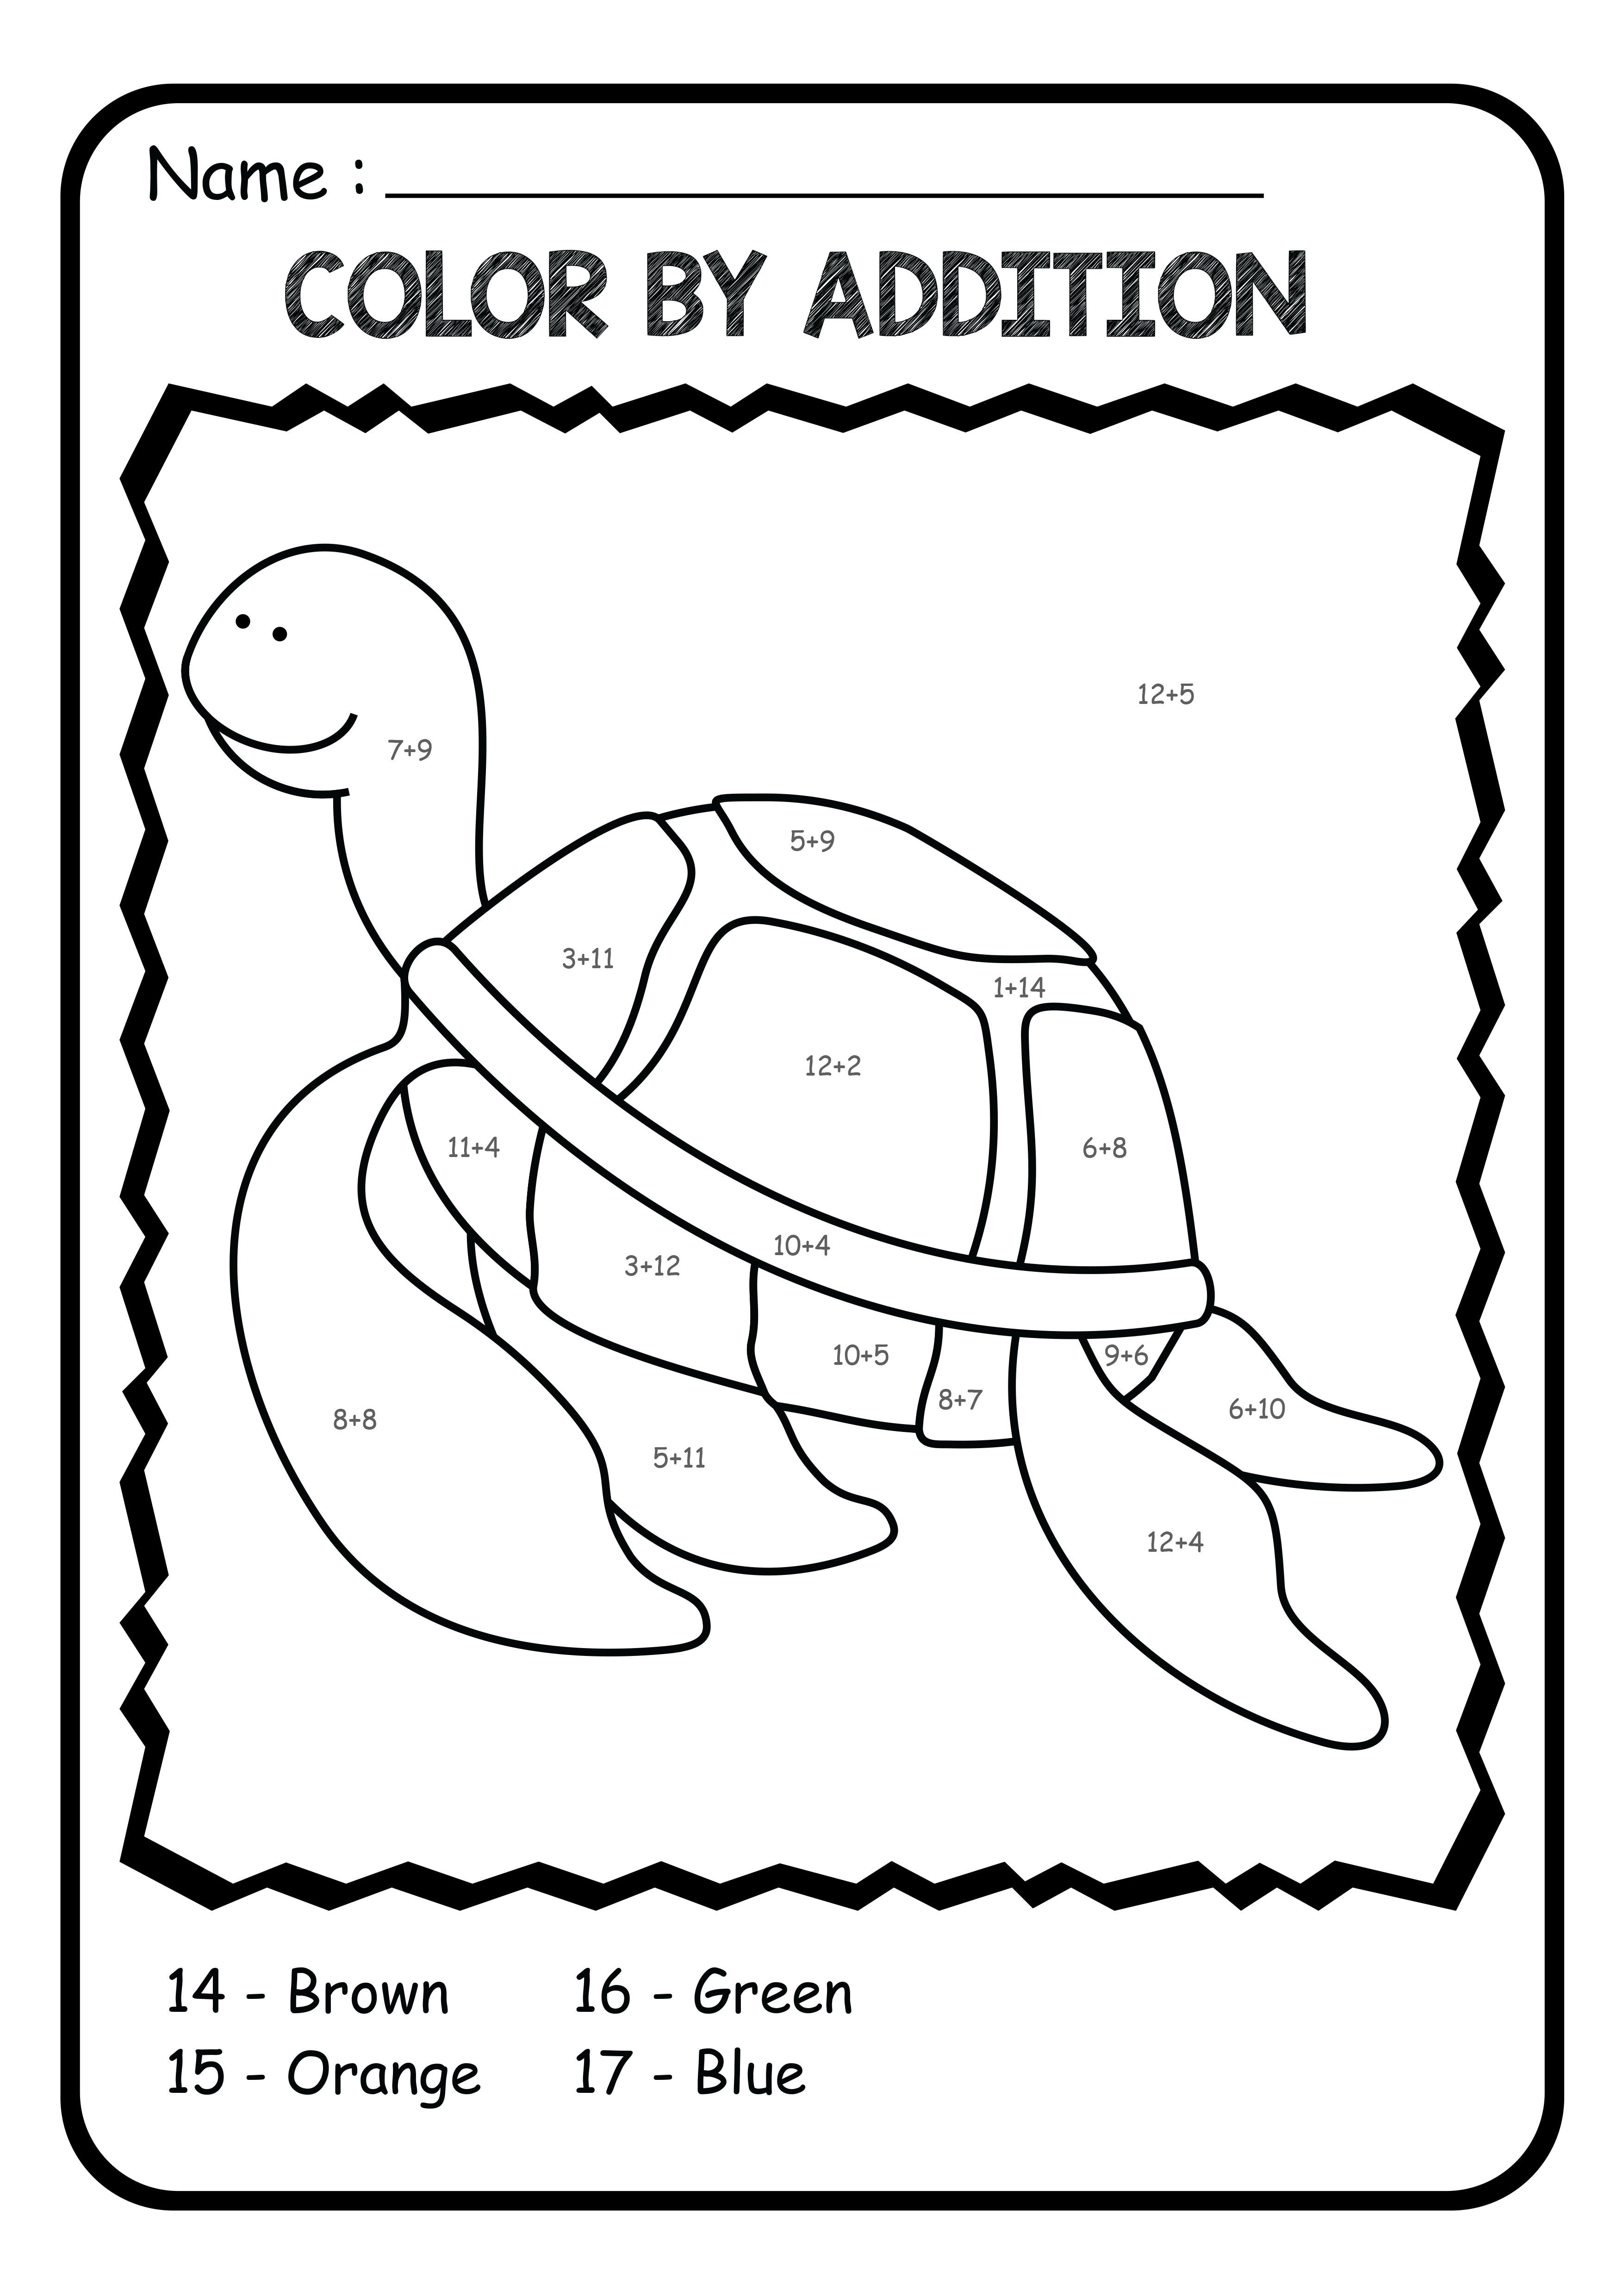 This Resource Is A Selection Of Color By Code Color By Number Subtraction Worksheets Math Coloring Worksheets Math Worksheets Subtraction Worksheets